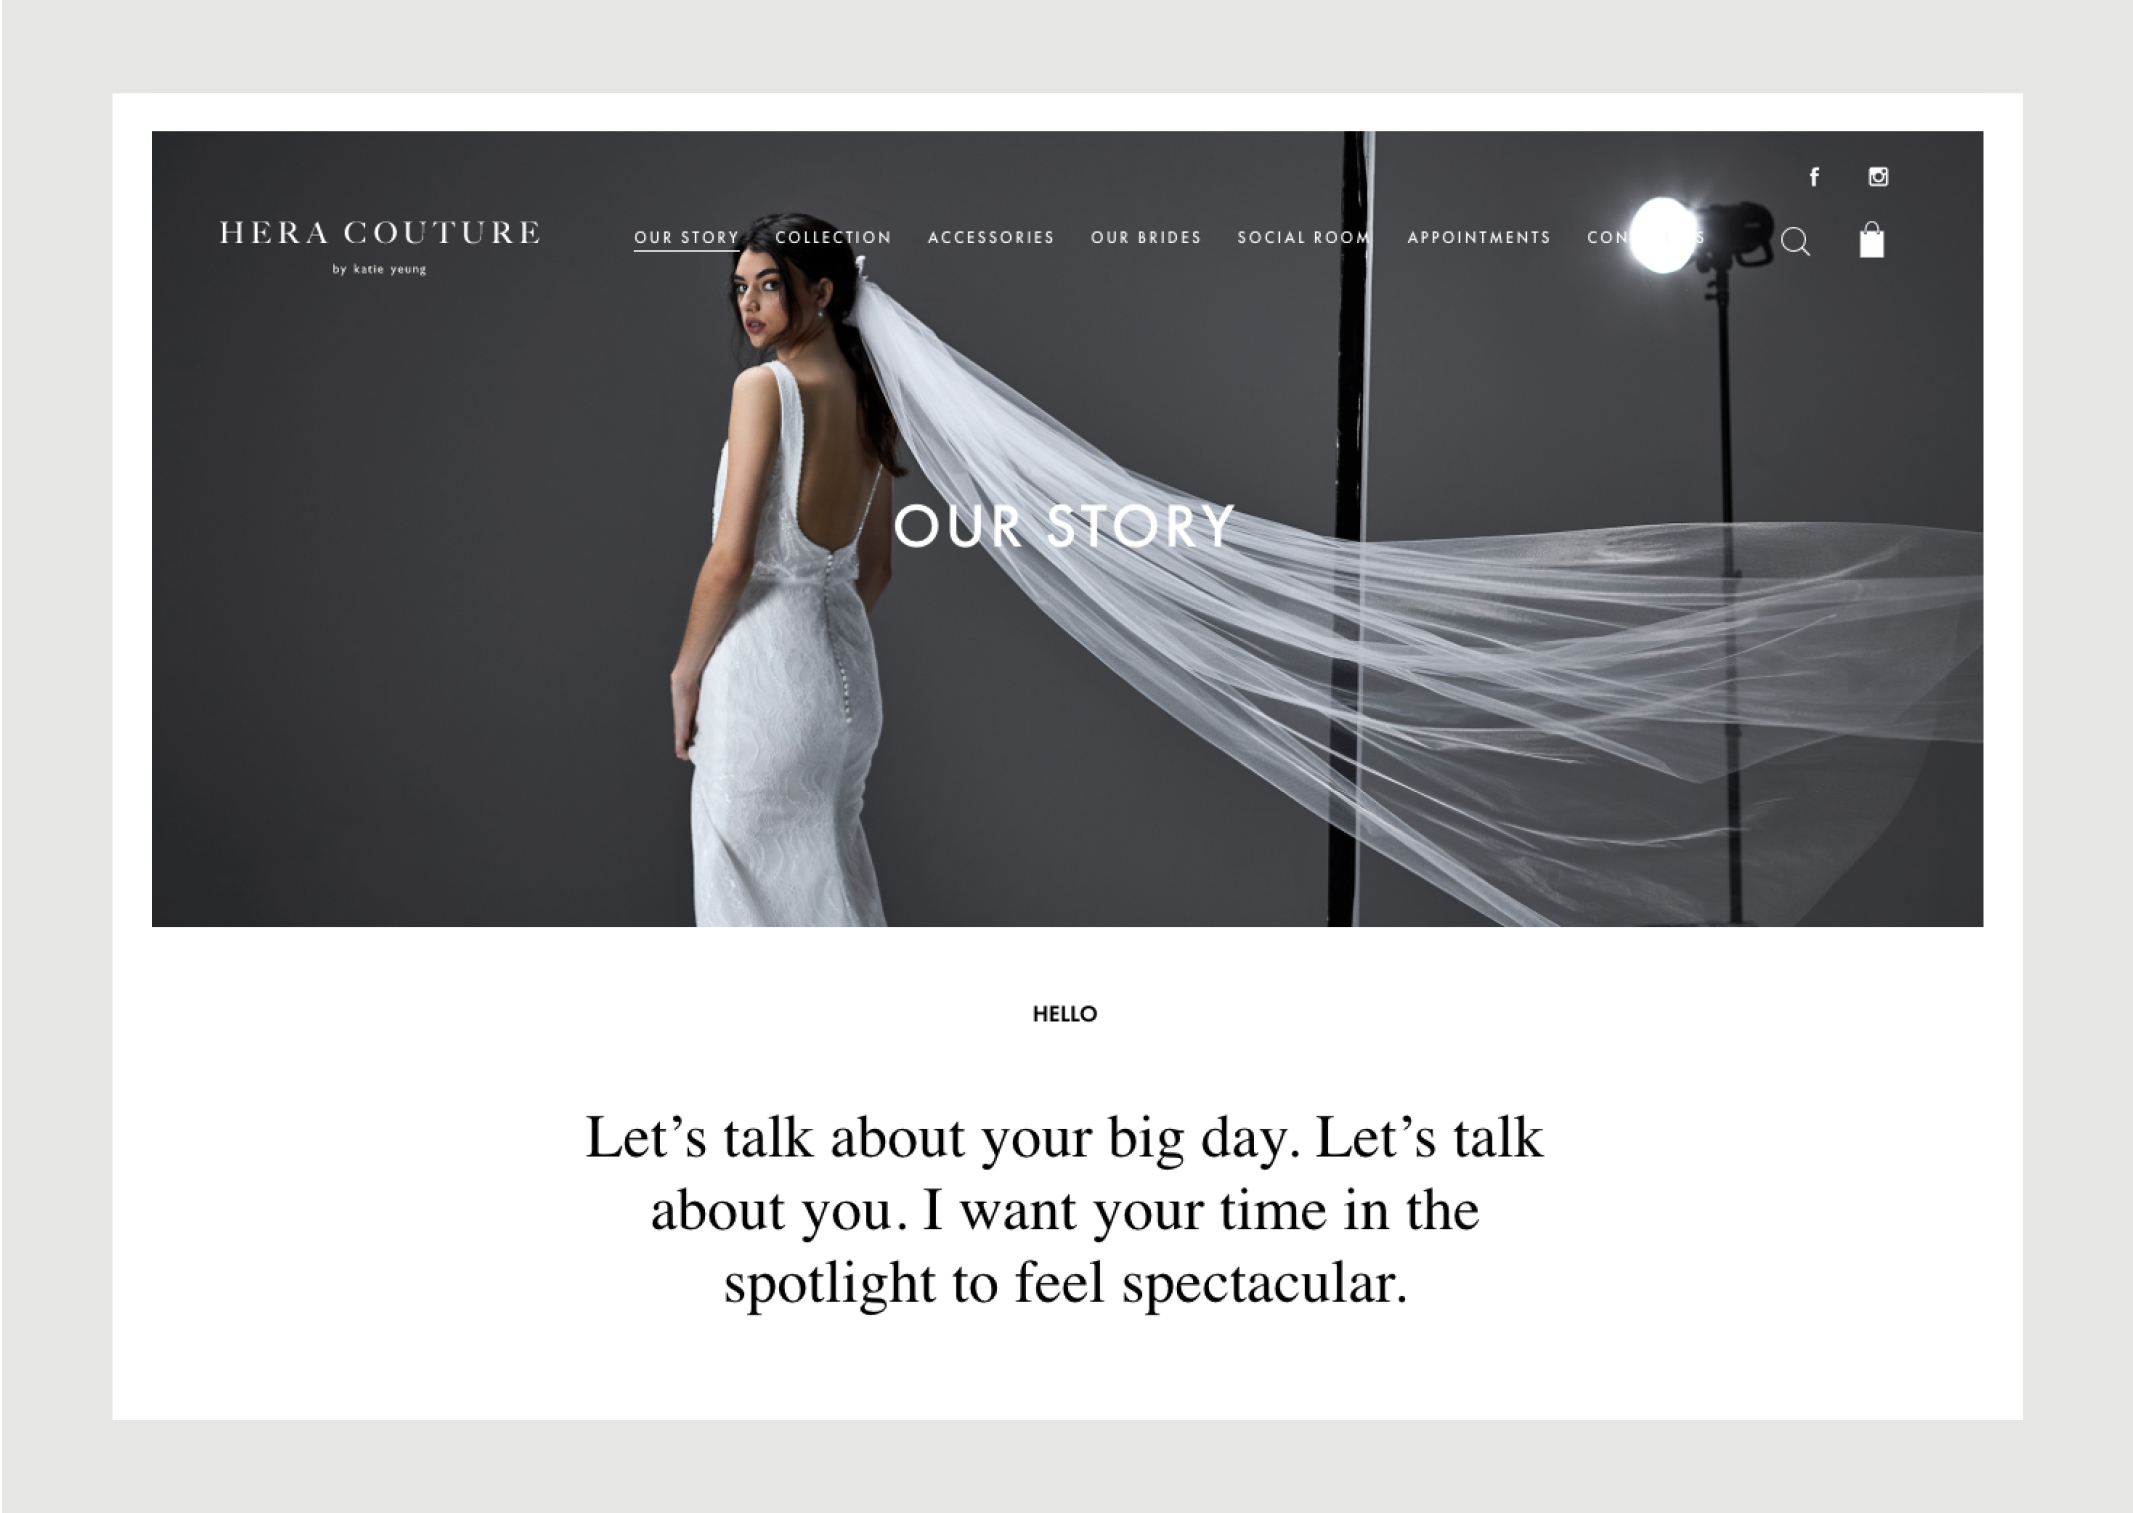 Hera Couture Website Our Story – intimate message from the designer and features sophisticated image of bride with flowing veil